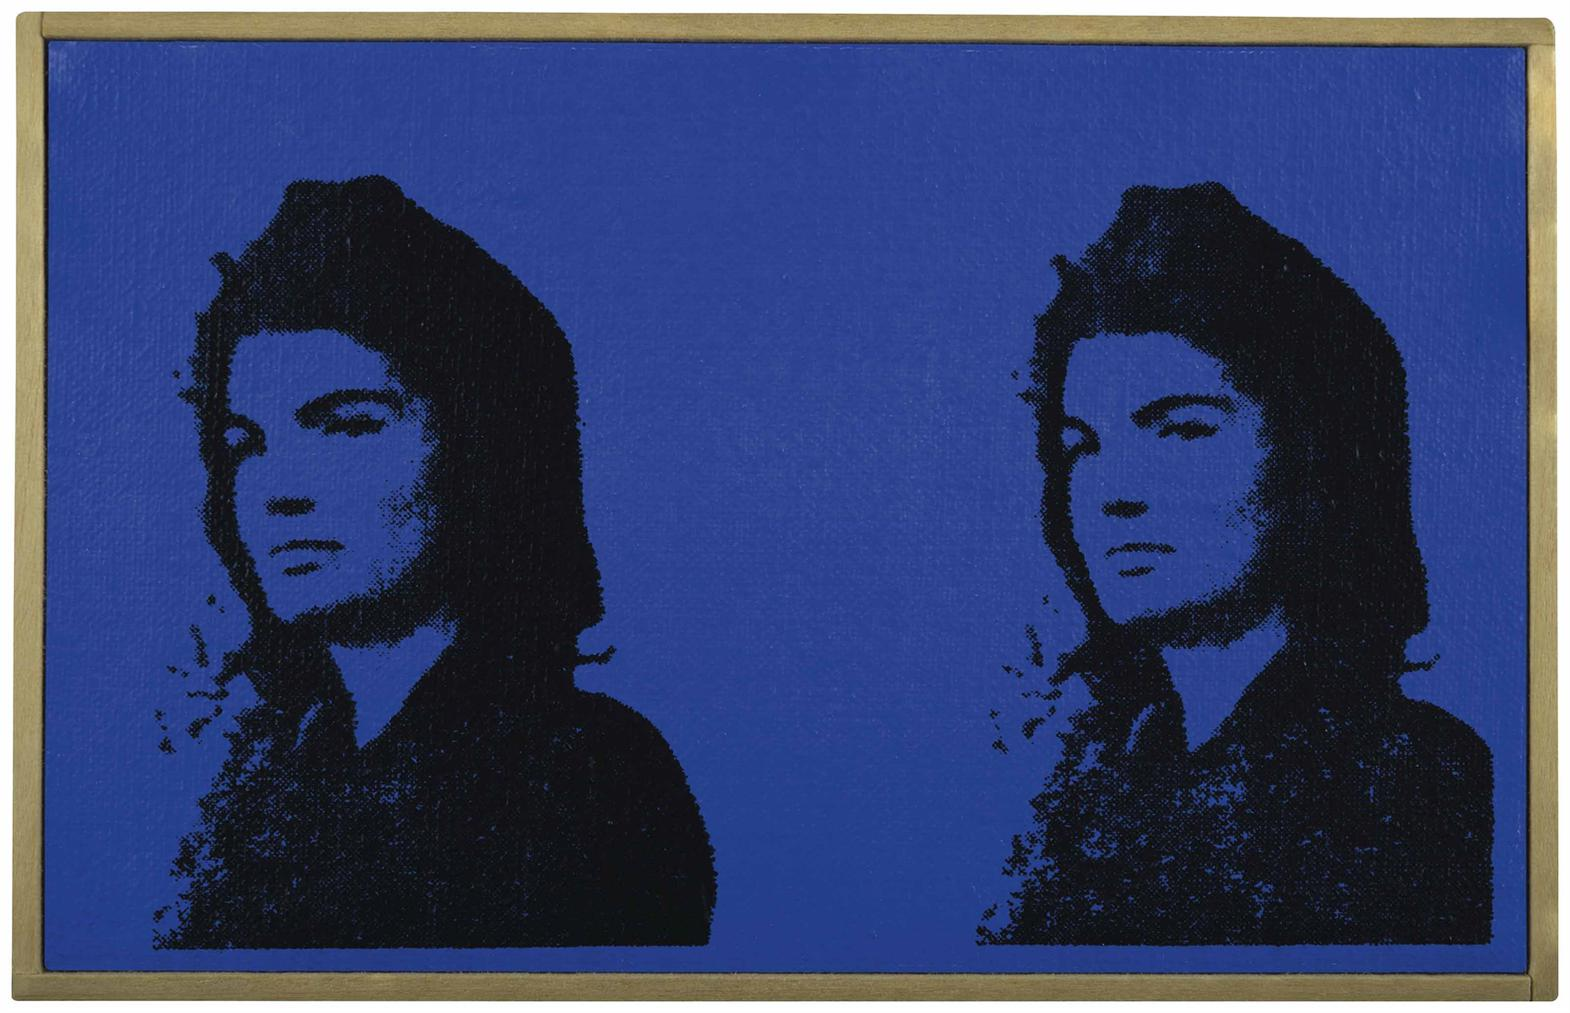 Richard Pettibone-Andy Warhol, Two Jackies, 1964-1996